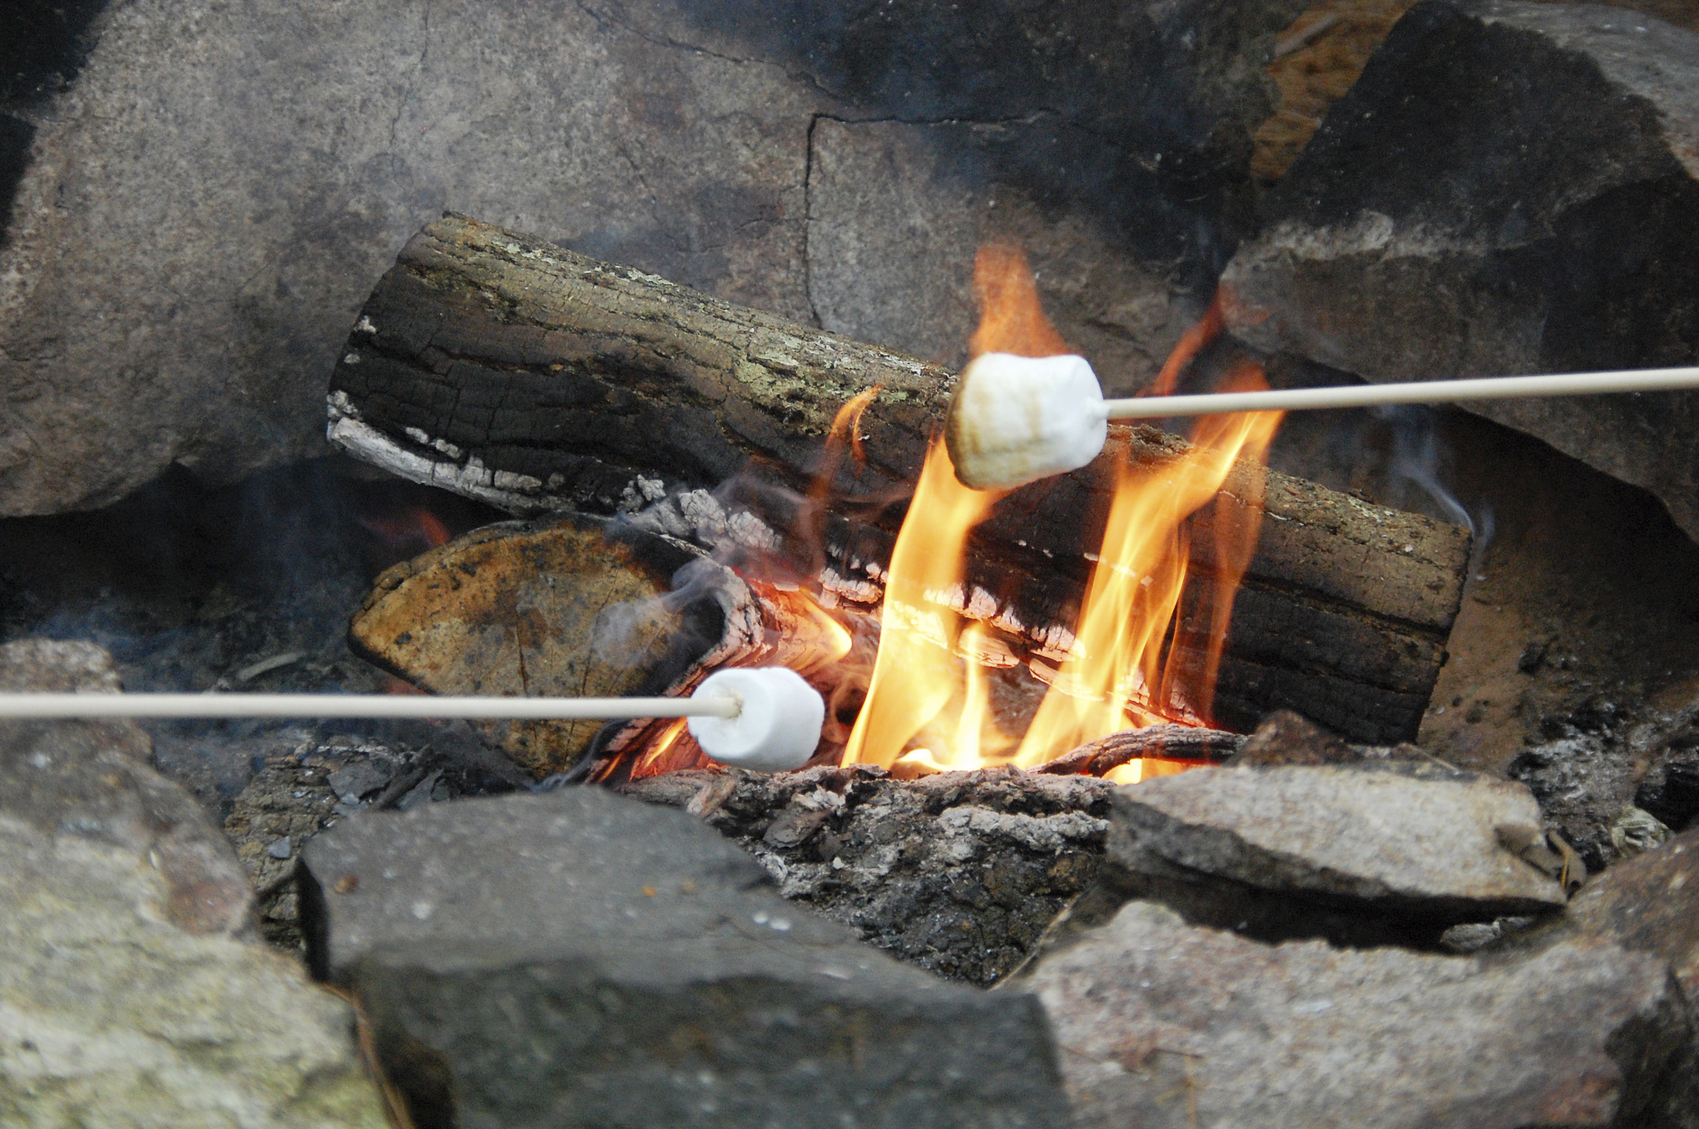 Two people roasting marshmallows on a campfire.